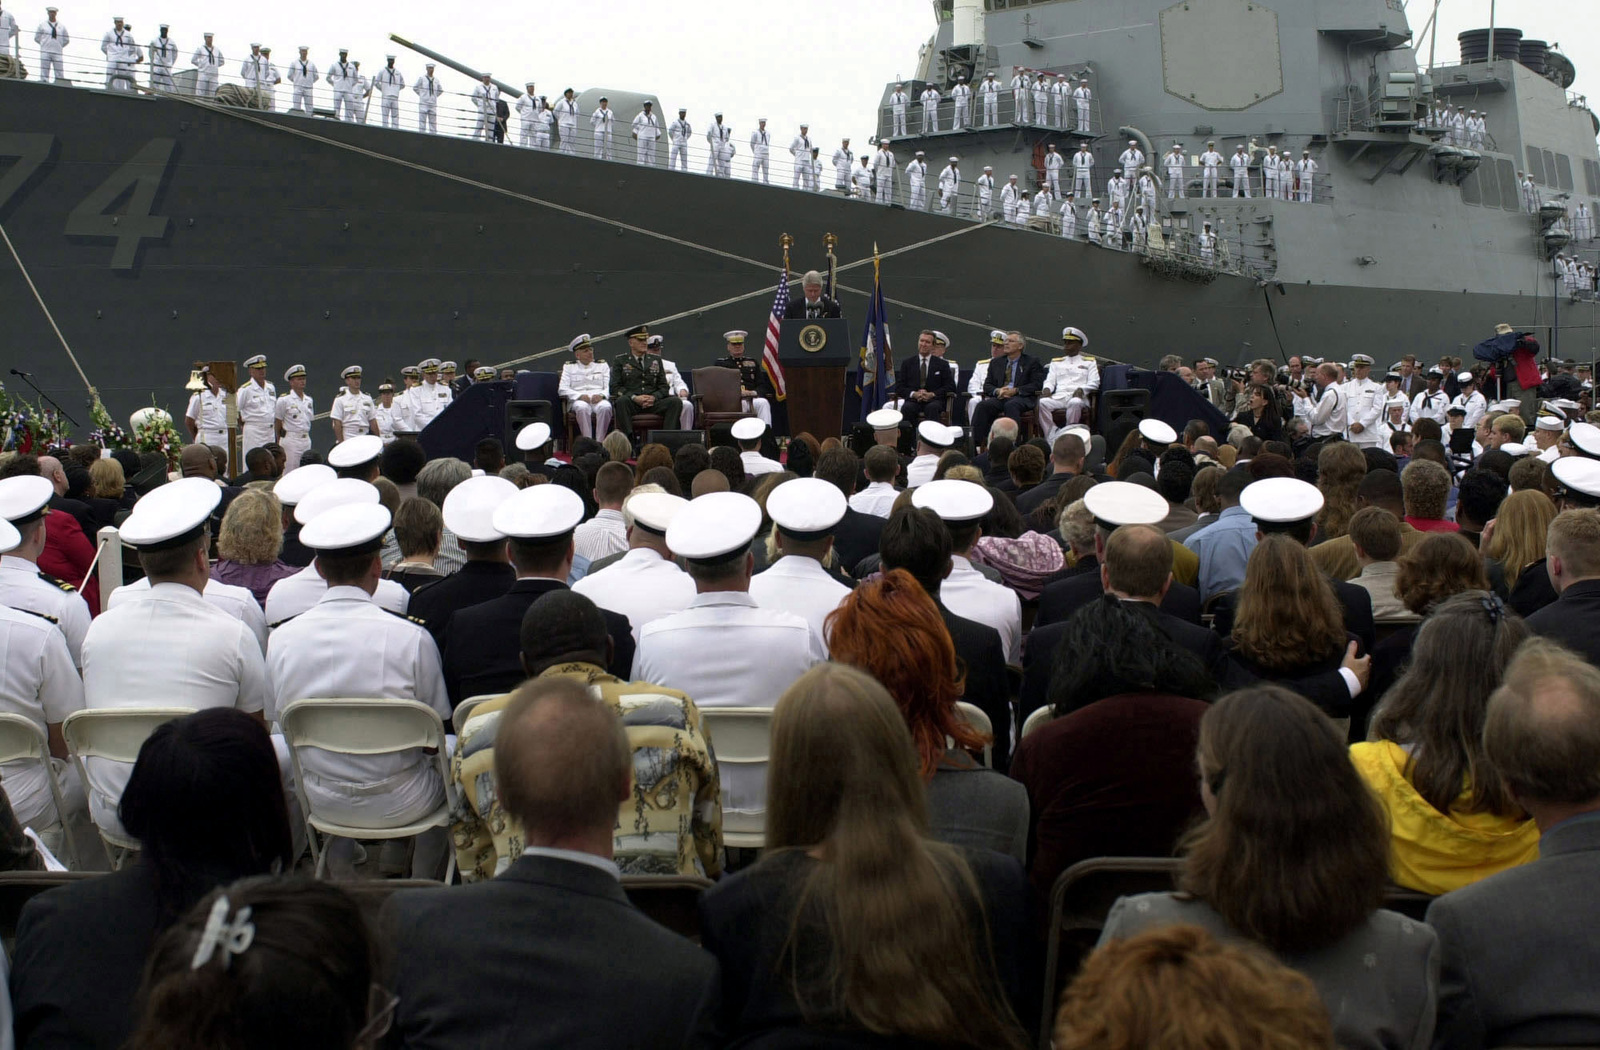 President Clinton (Commander in CHIEF) and other military leaders address a closed memorial service for families and friends of the sailors killed and those still missing as a result of the terrorist attack on the USS COLE (DDG 67) in the port of Aden, Yemen